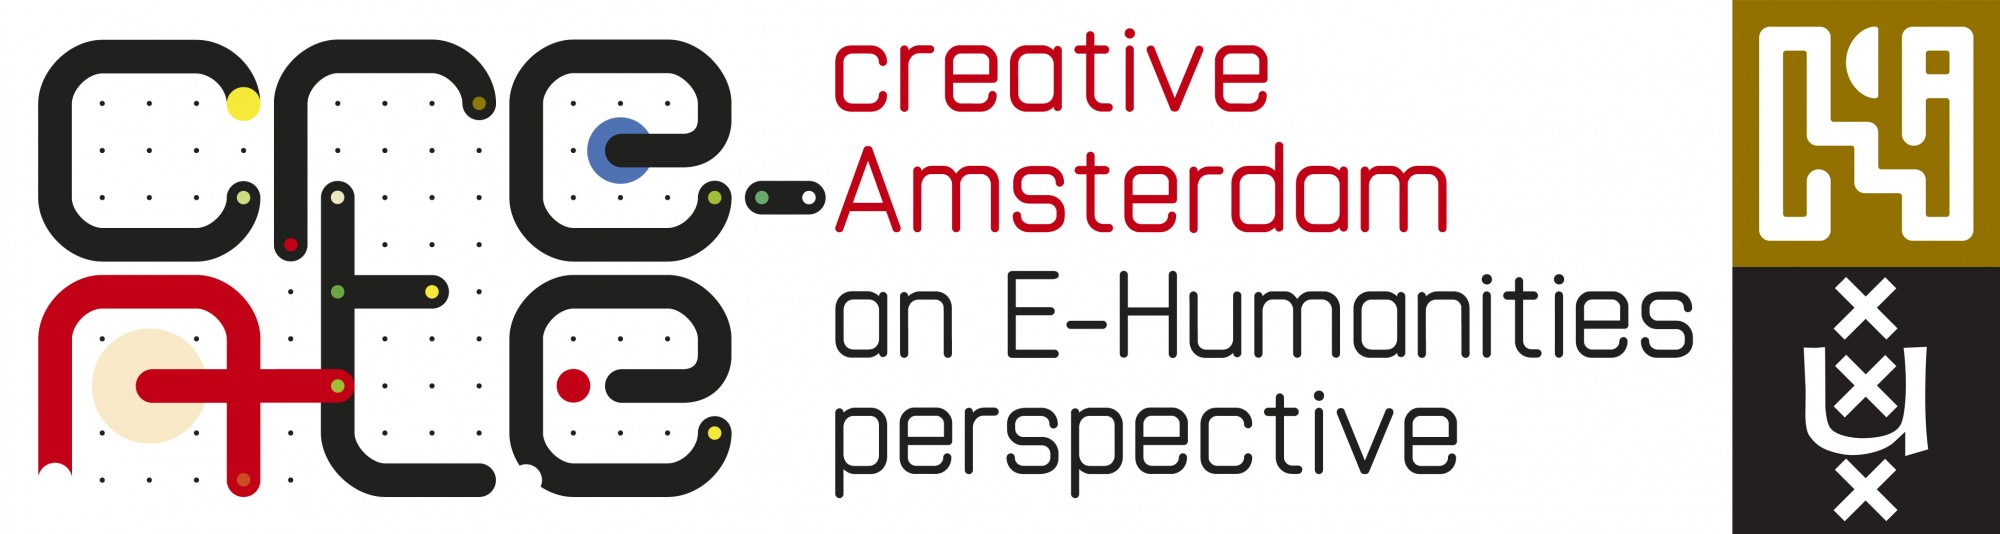 CREATECreative Amsterdam: An E-Humanities Perspective